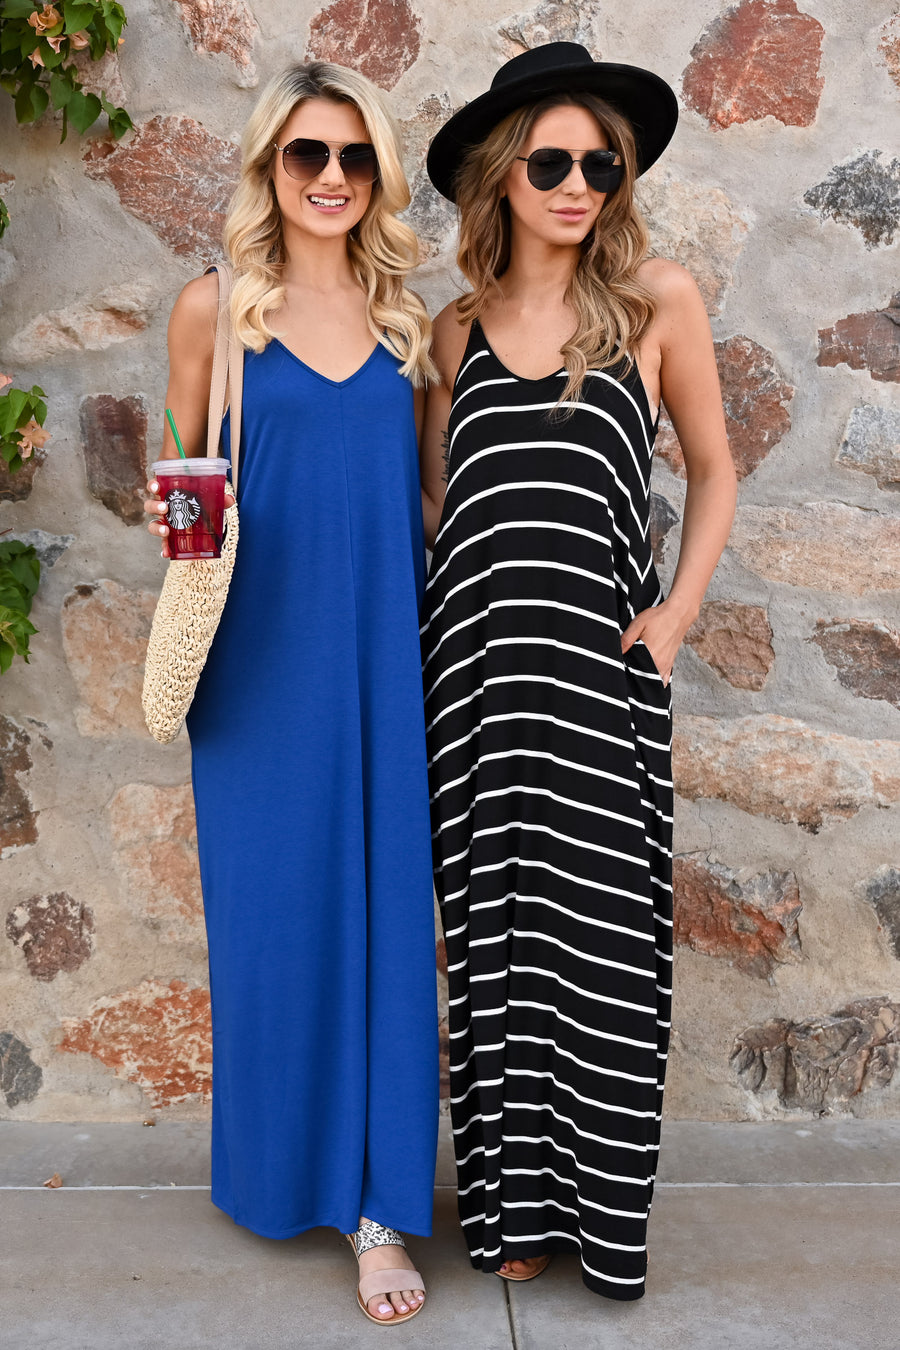 Something Simple Maxi Dress - Navy womens casual solid adjustable strap long dress closet candy 1